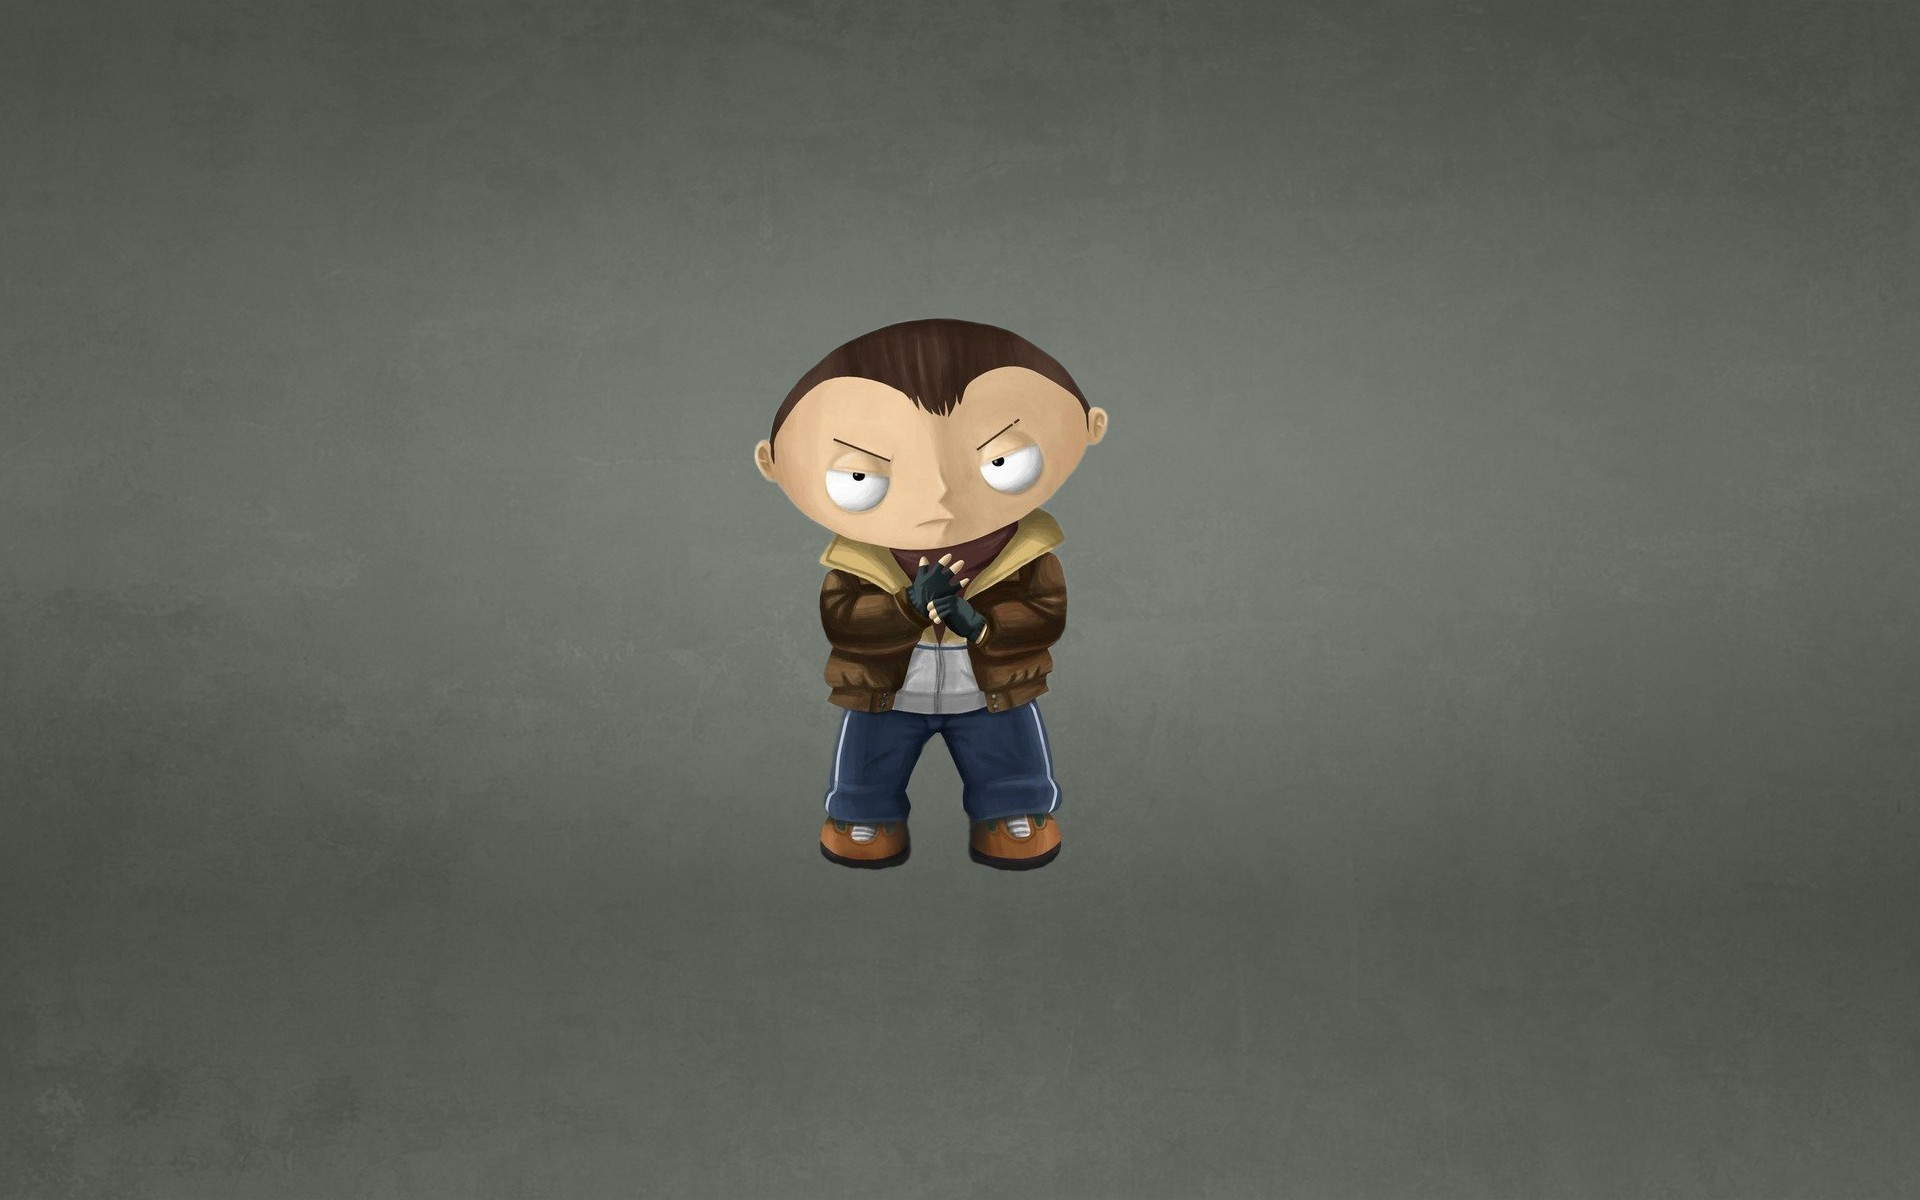 Stewie Griffin Wallpaper Hd Funny Family Guy Wallpapers 54 Images